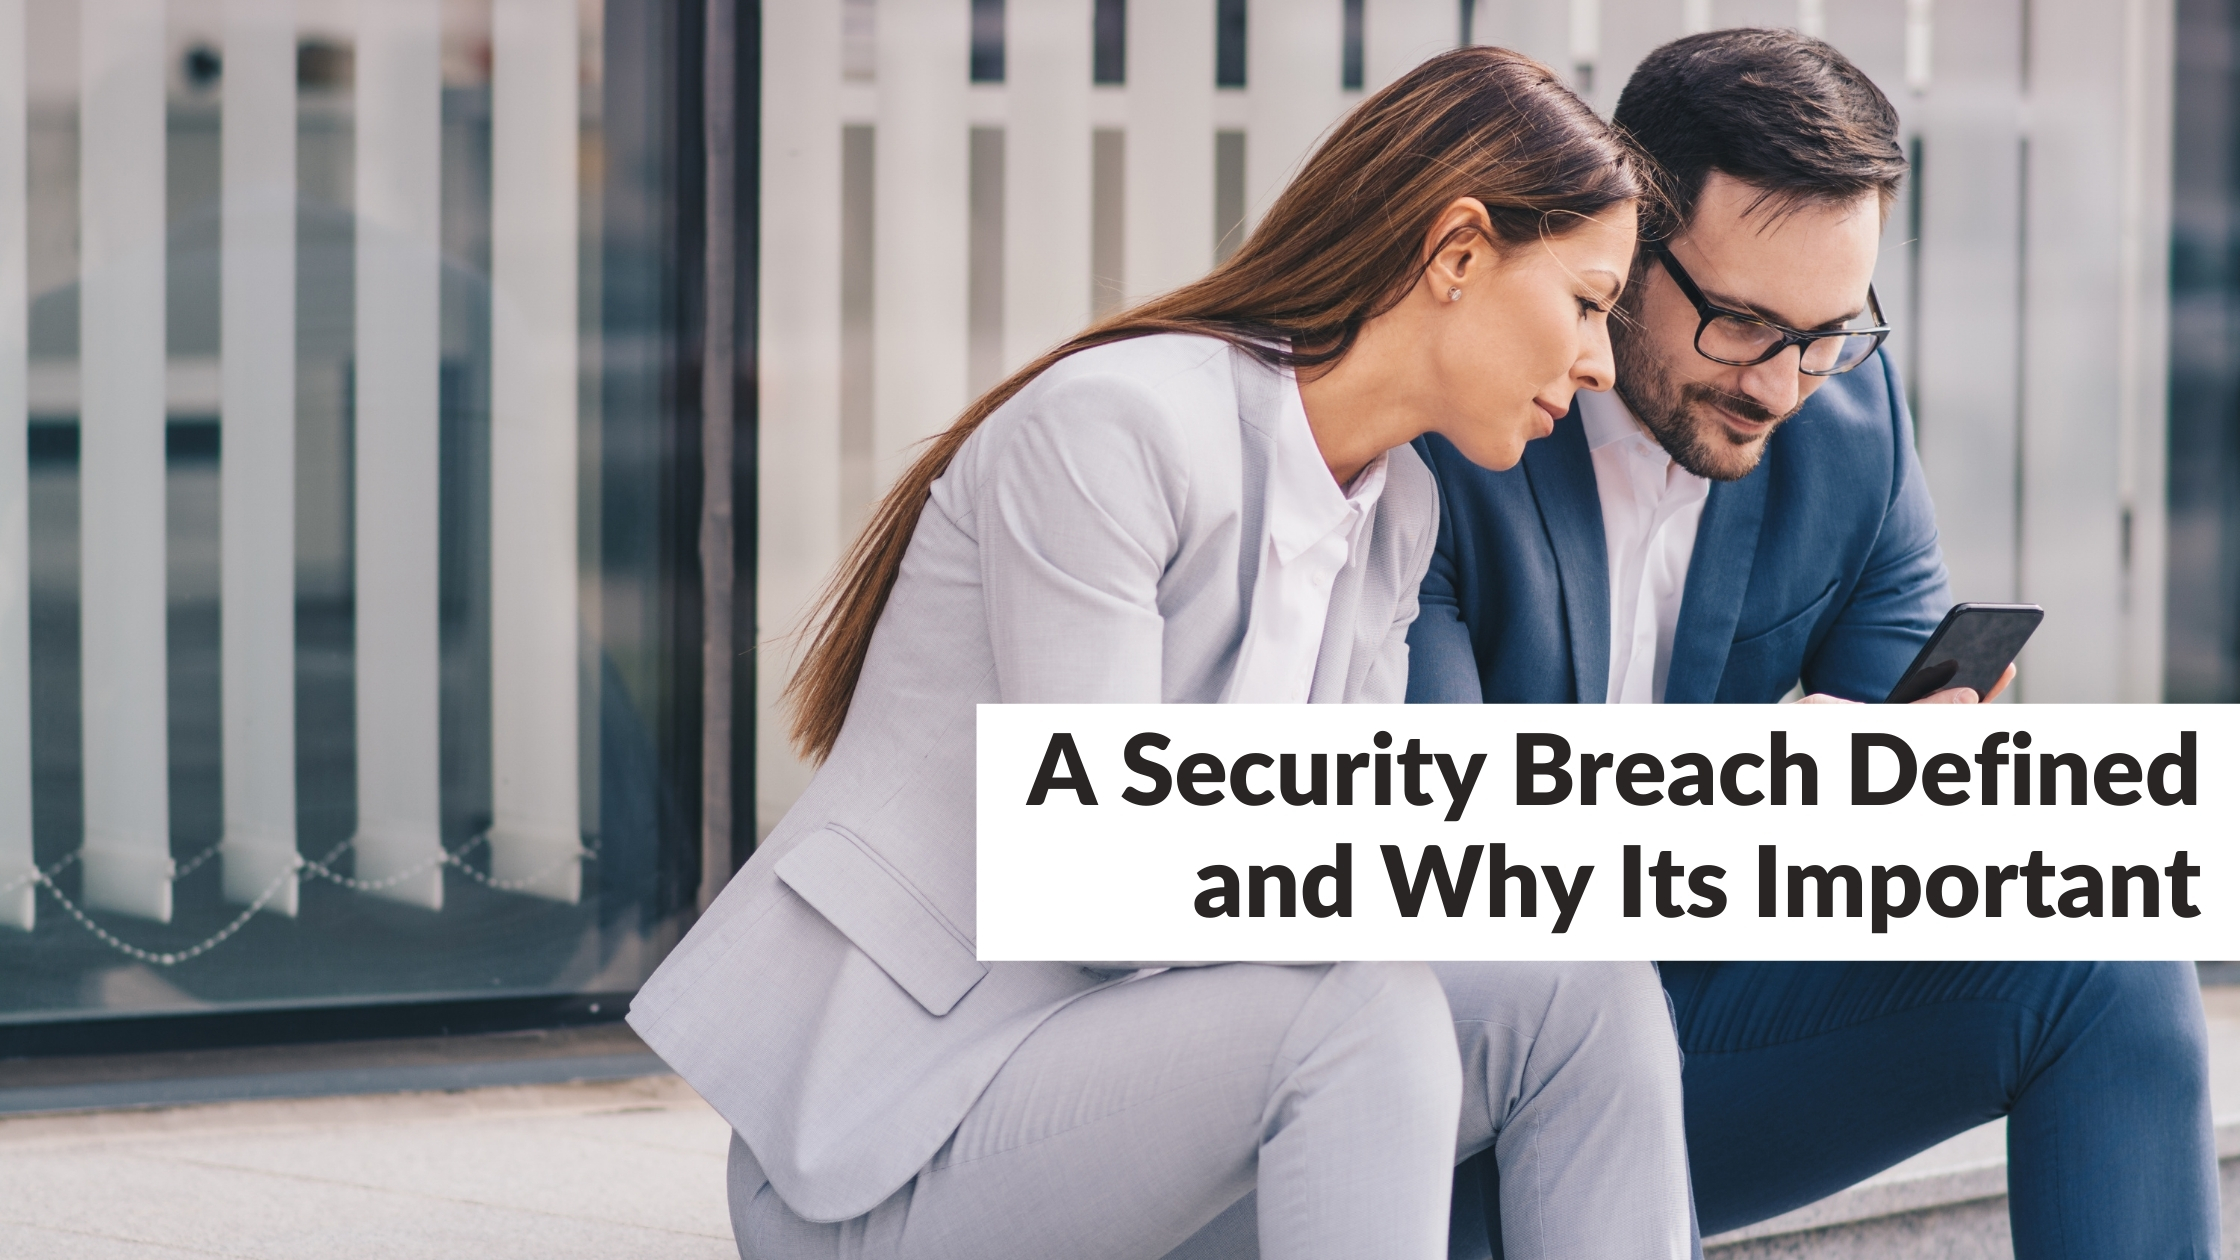 A Security Breach Defined and Why Its Important